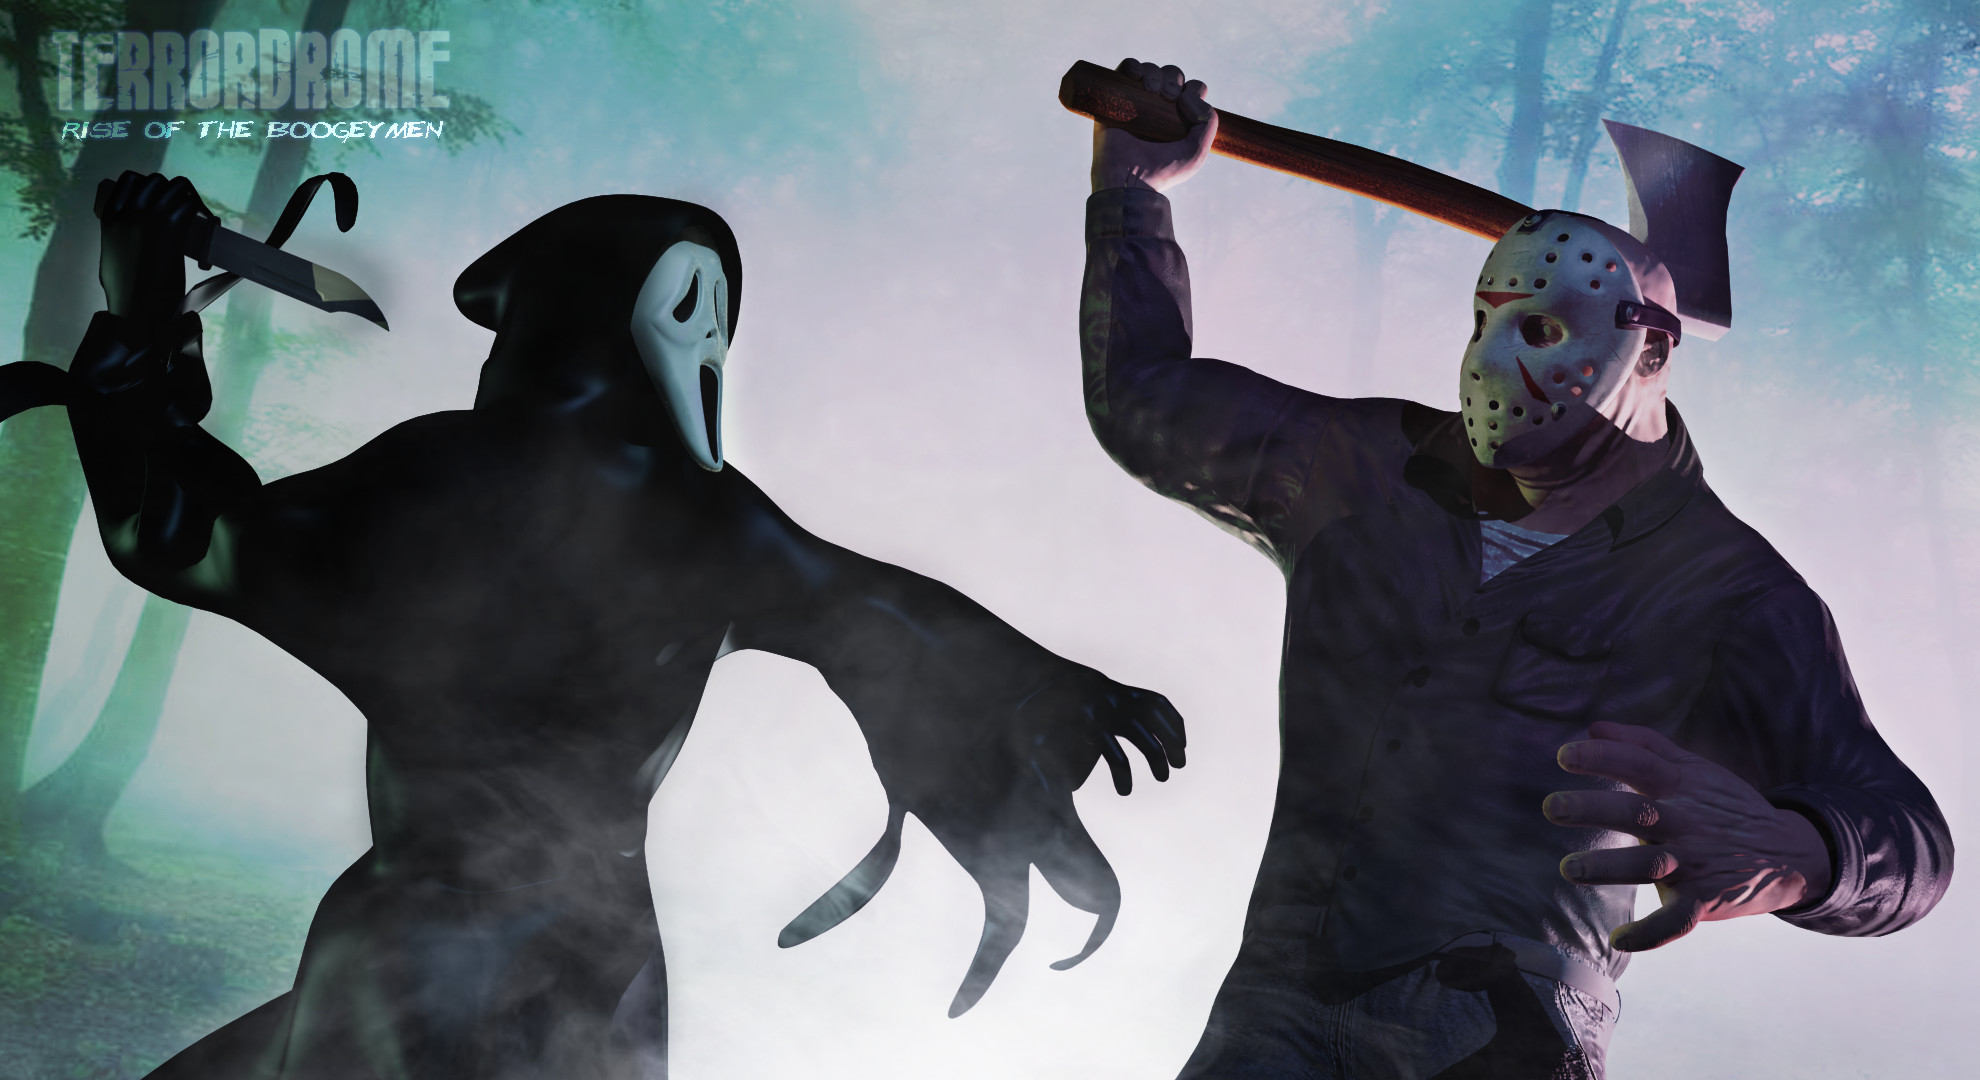 Res: 1980x1080, Ghostface vs Classic Jason Voorhees